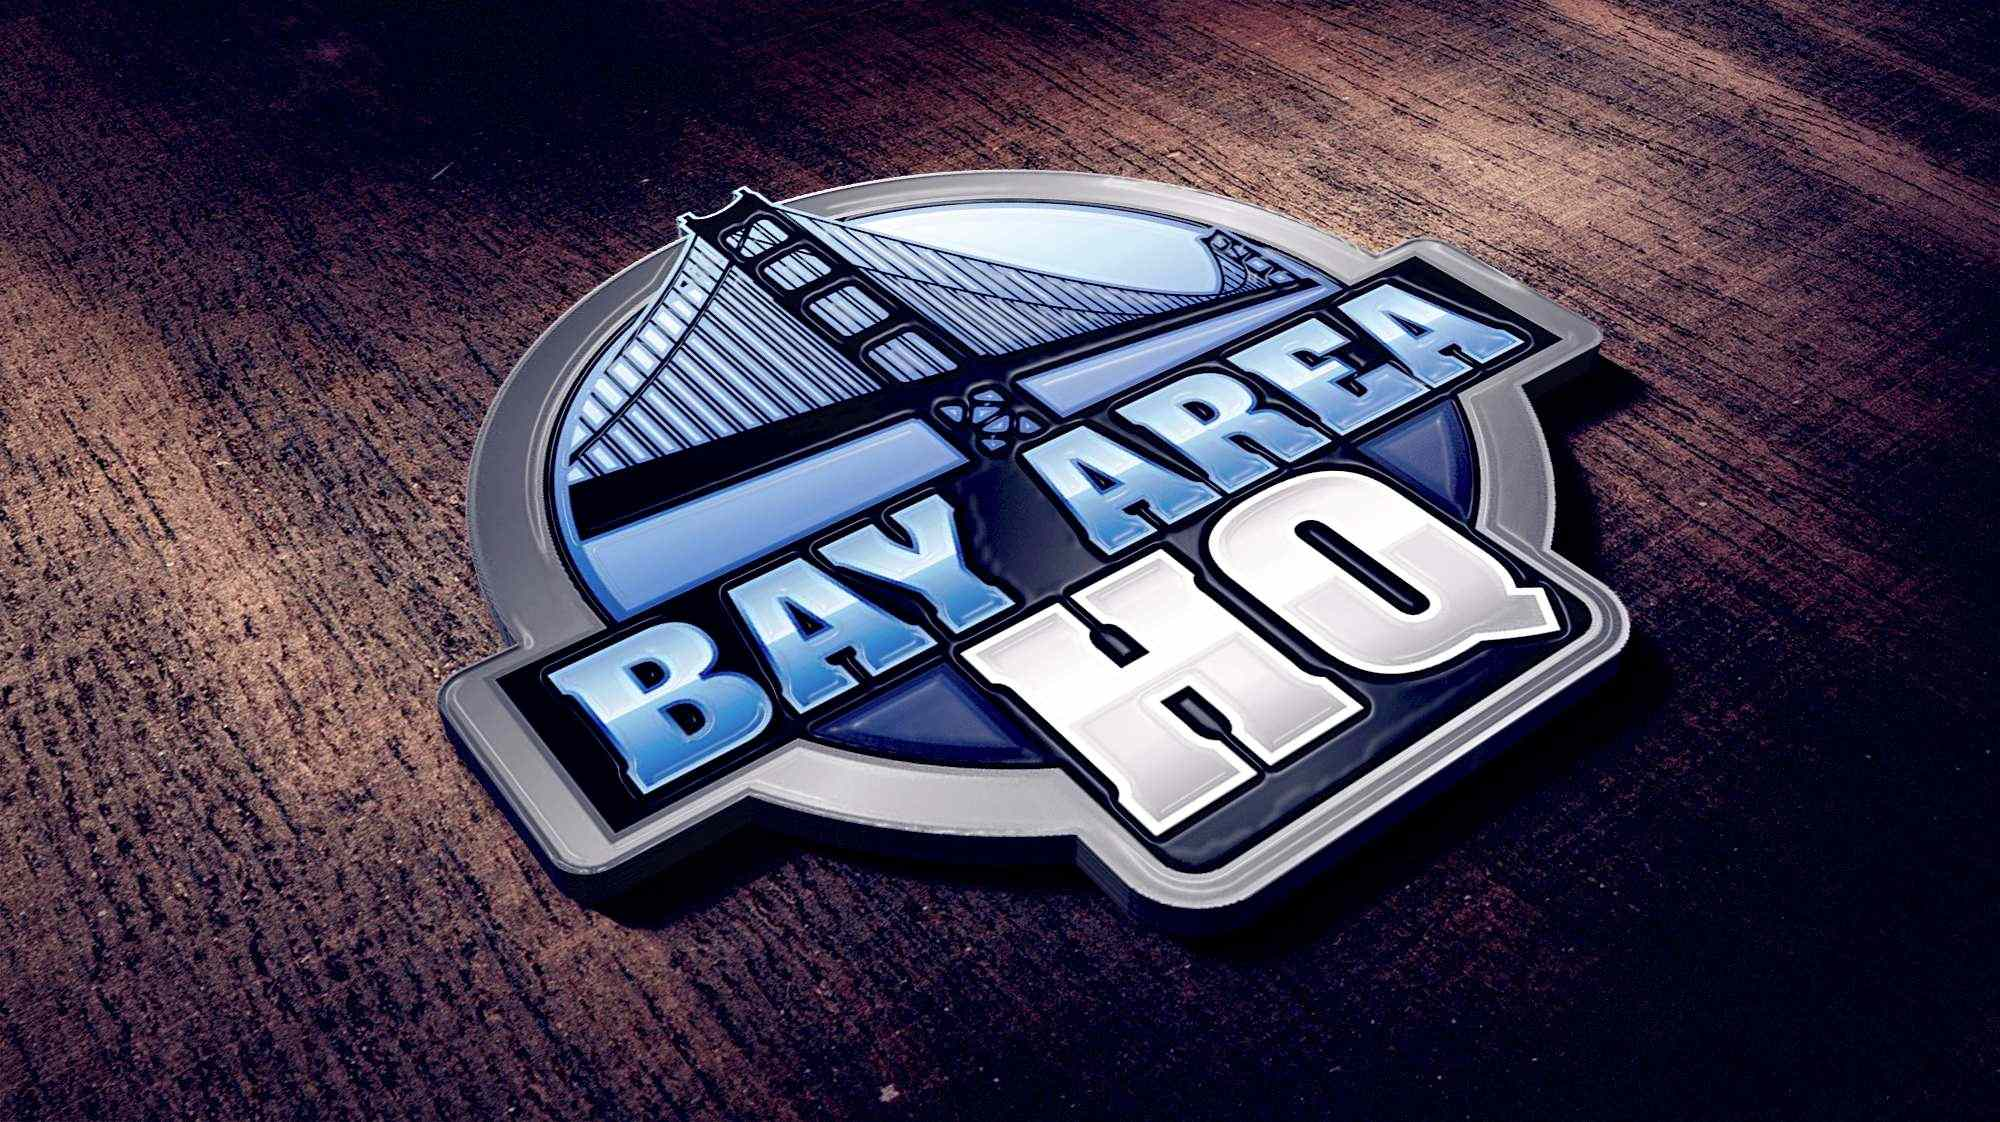 Bay Area HQ - San Francisco Bay Area Sports and Entertainment News